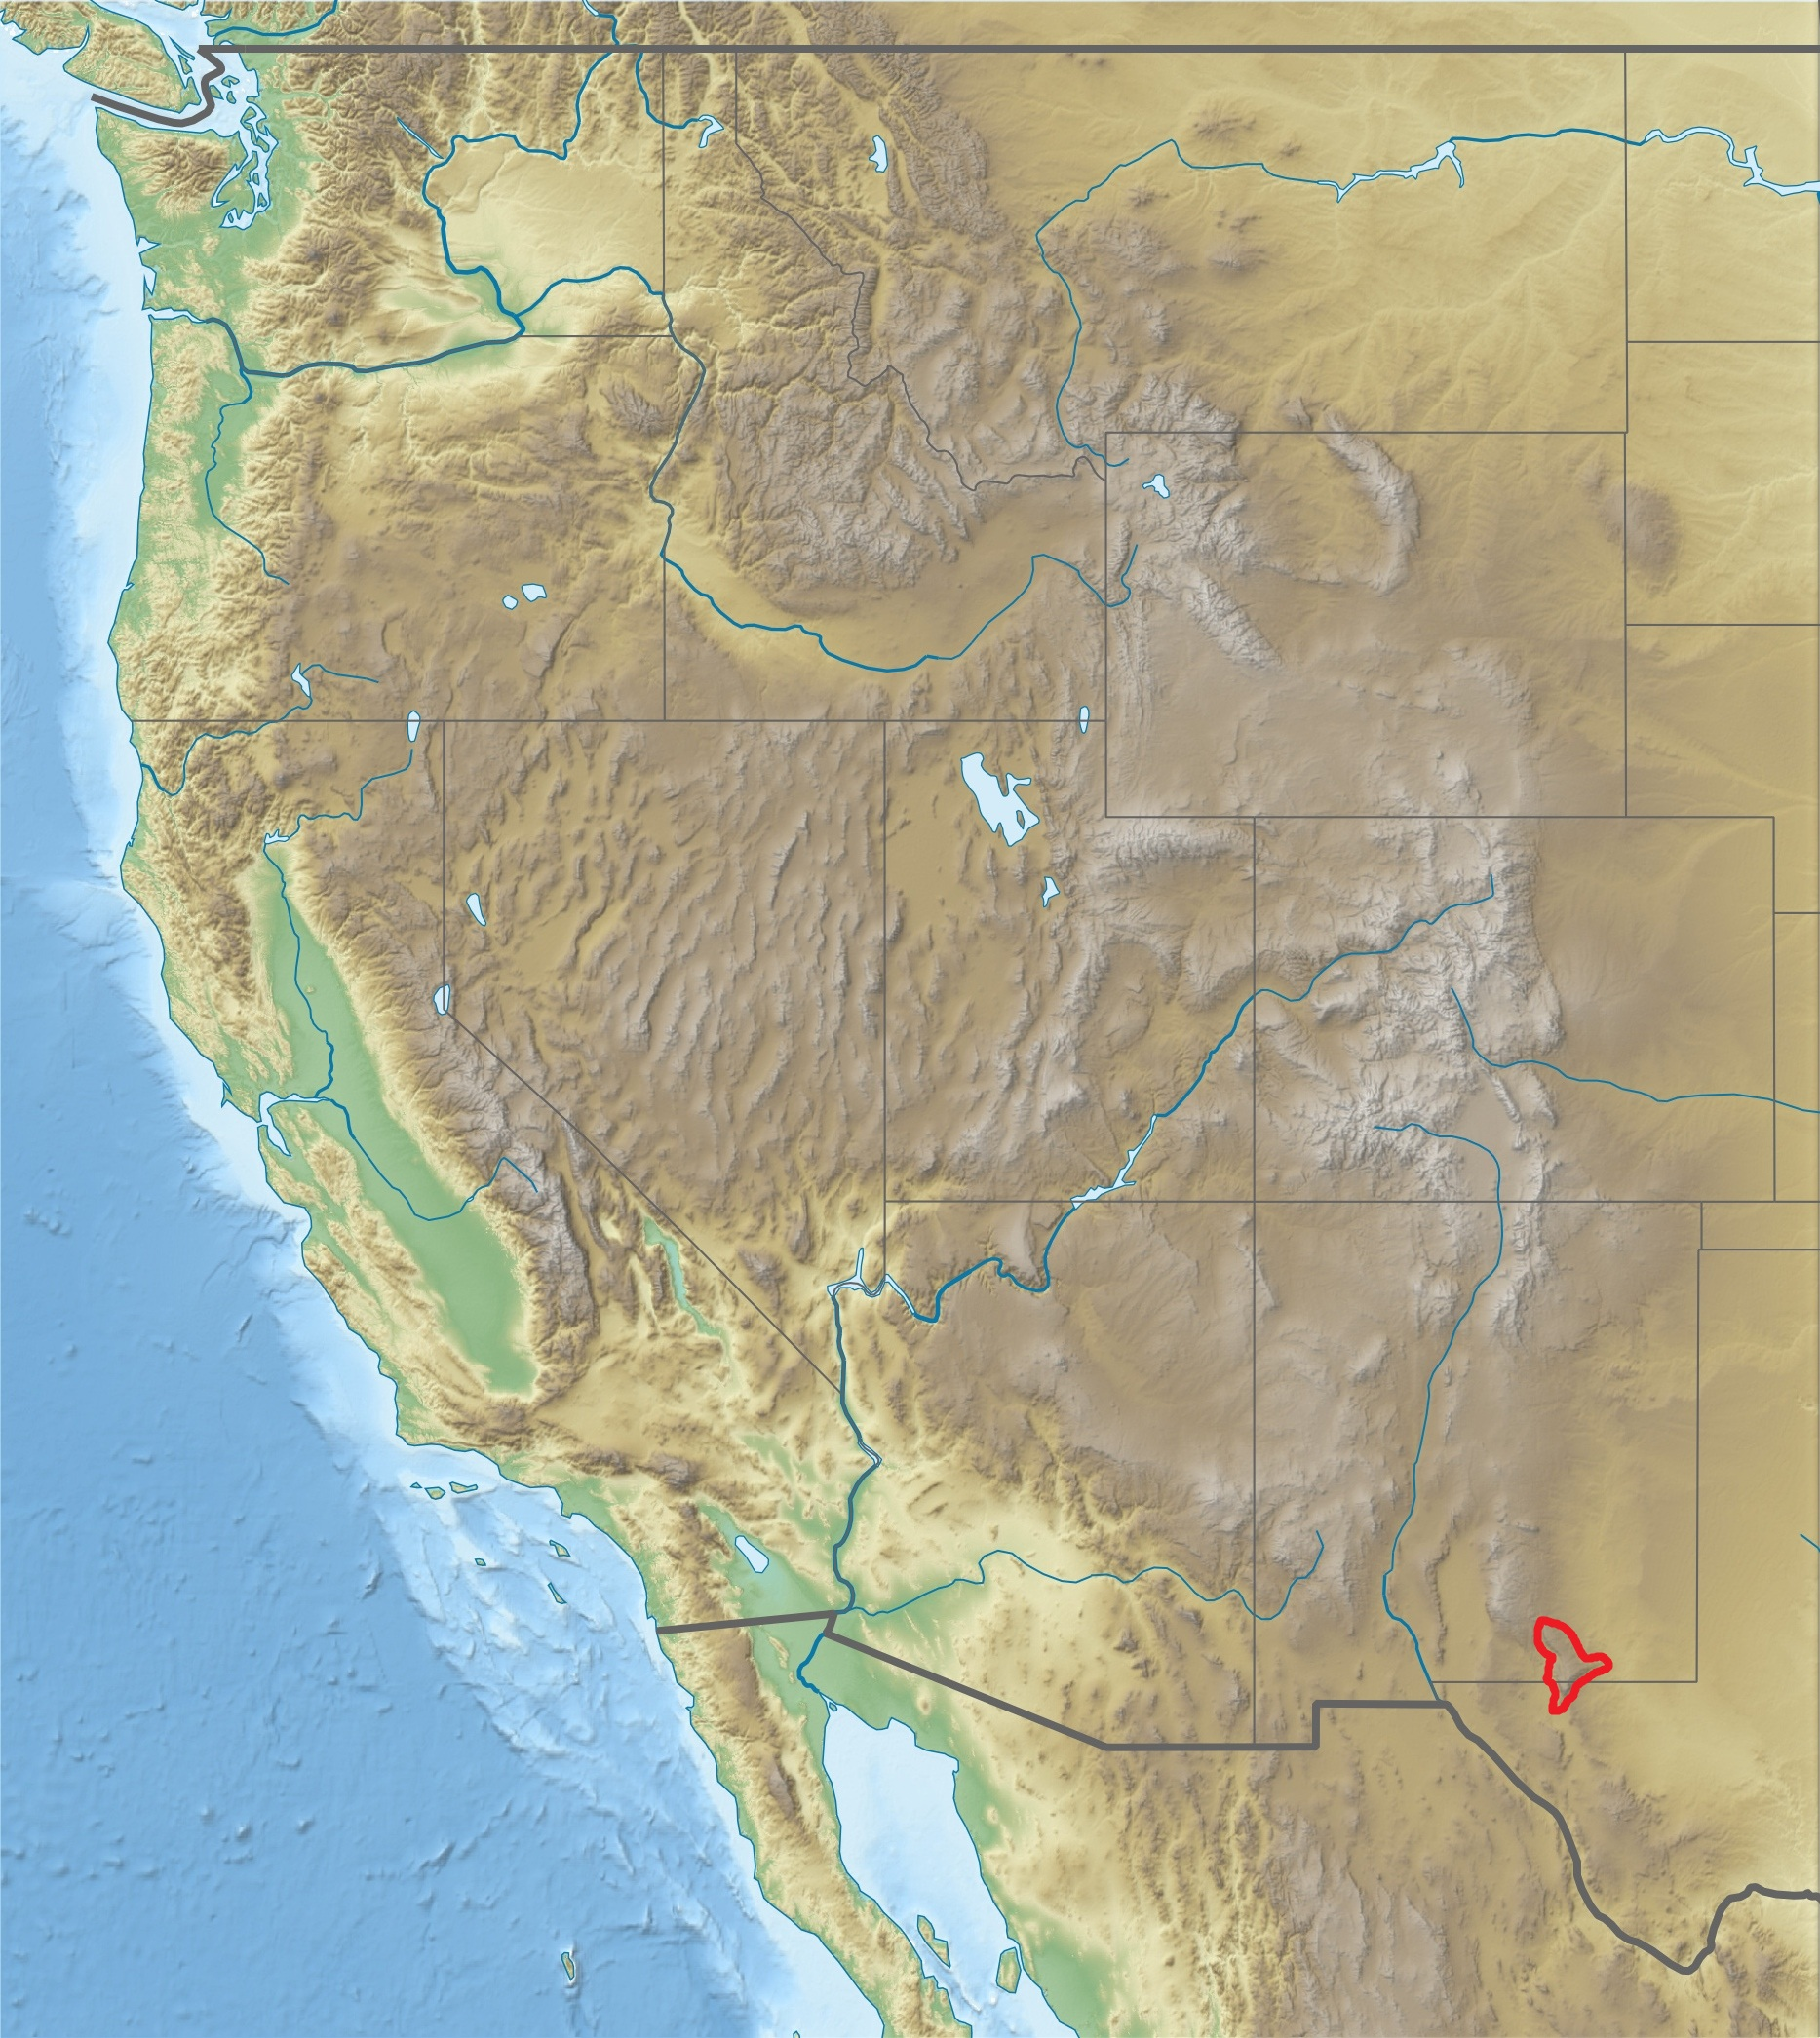 FileUSA Region West relief Guadalupe Mountains location mapjpg